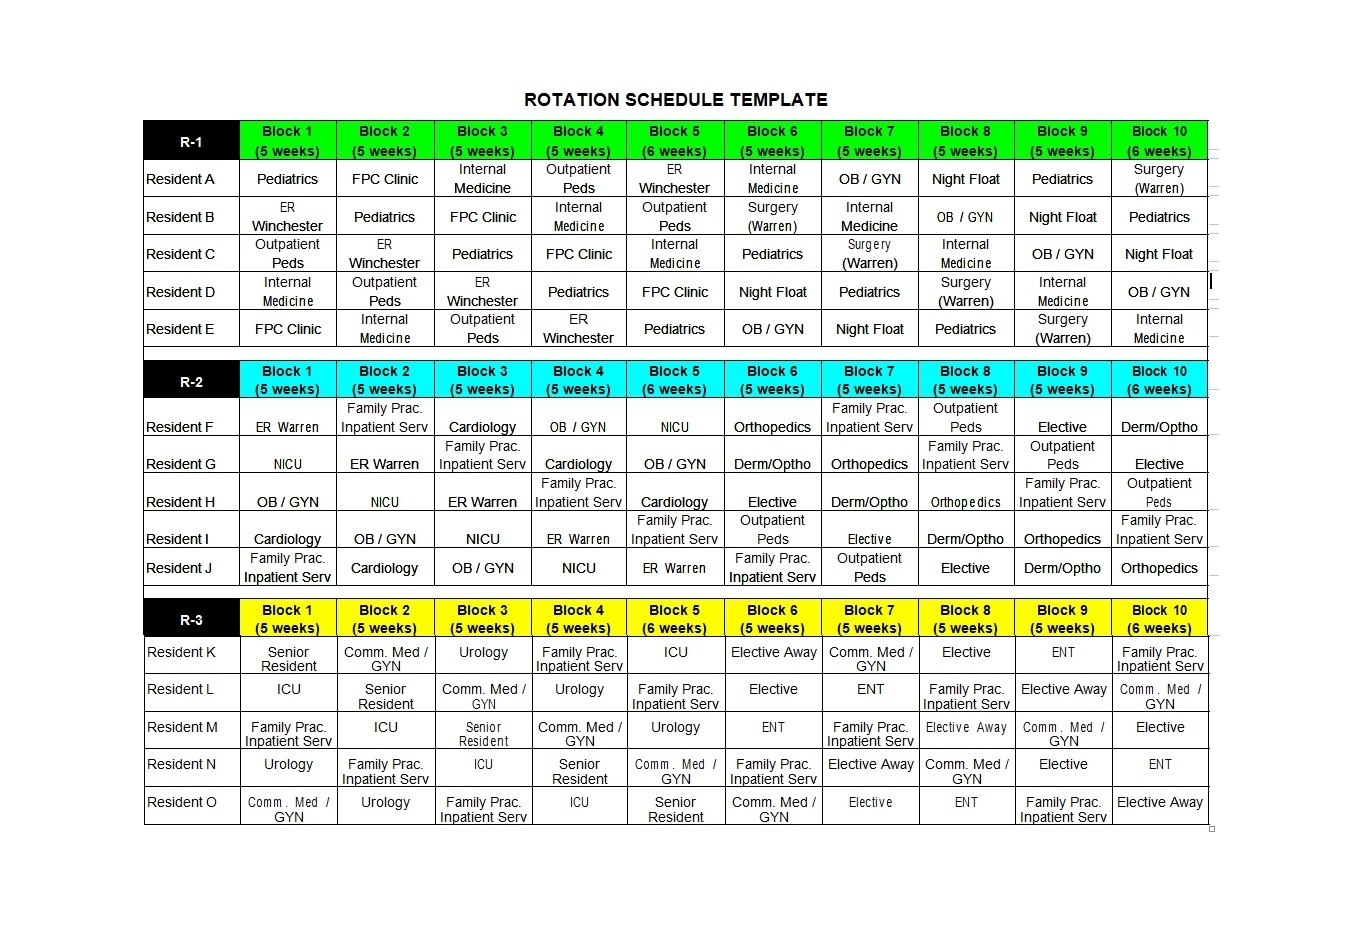 50 Free Rotating Schedule Templates For Your Company within 12 Hour Shift Calendar Templates